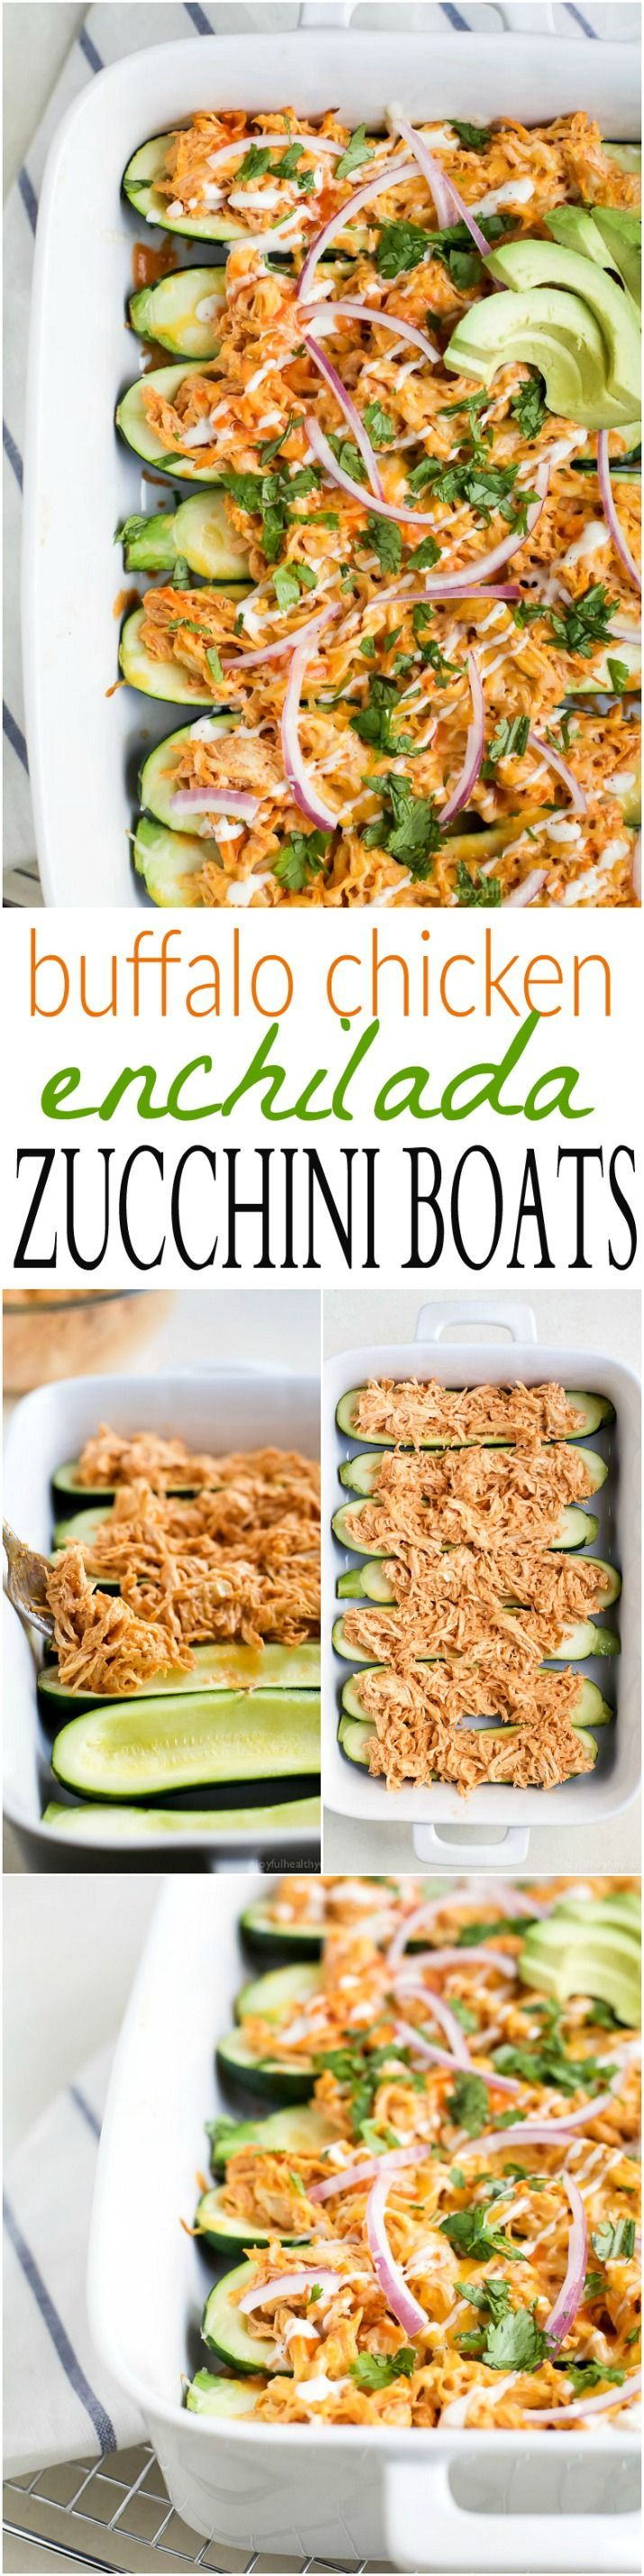 Buffalo Chicken Enchilada Zucchini Boats - tender zucchini stuffed with a creamy Buffalo Chicken mixture then drizzled with ranch. The perfect healthy way to eat Buffalo Chicken Dip without all the carbs! | joyfulhealthyeats.com | gluten free recipes